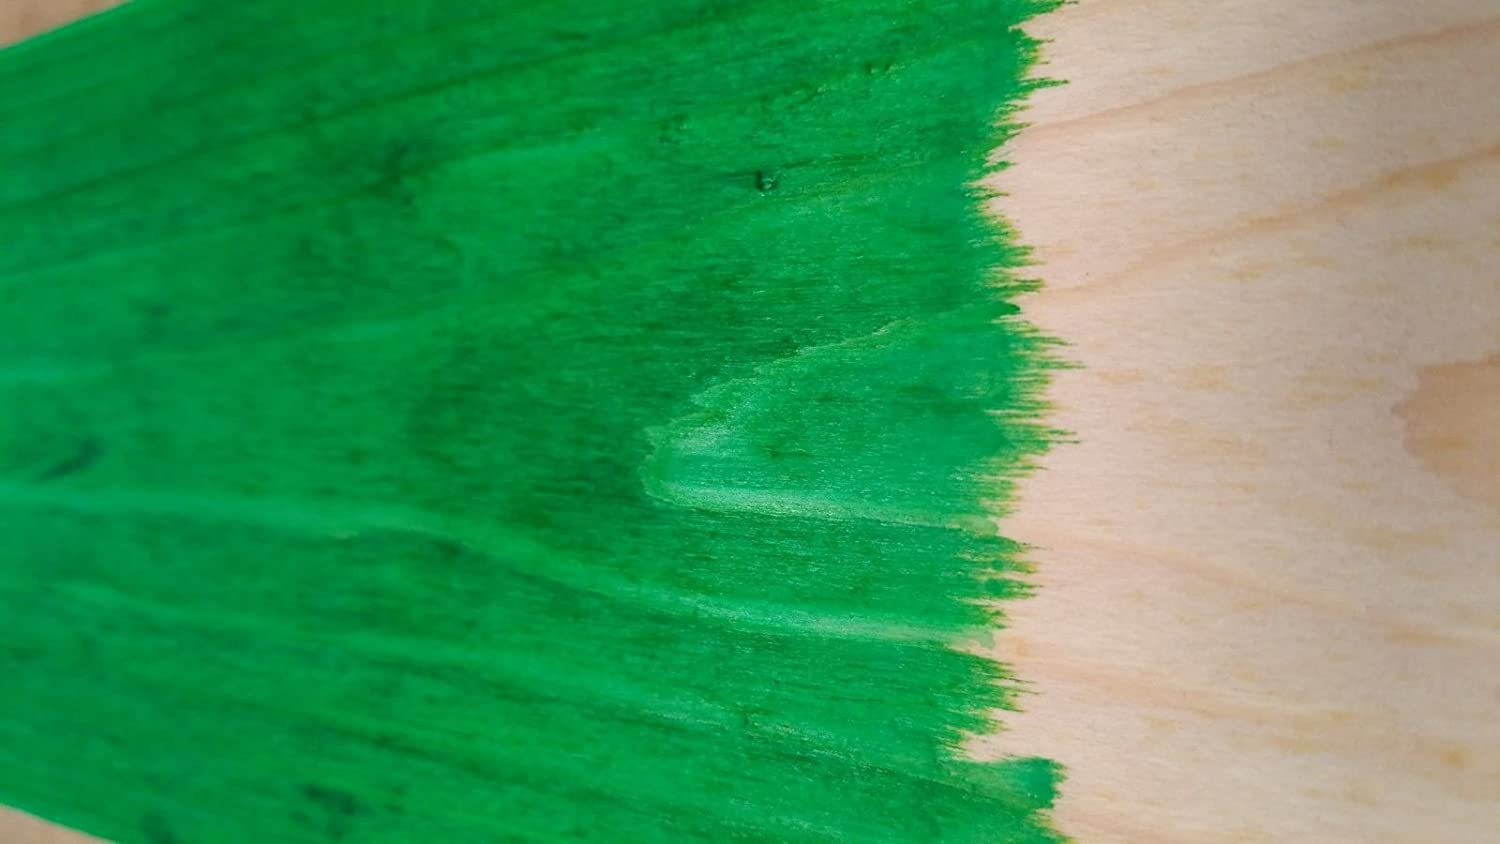 WOOD DYE - Bolgers water based wood stain - environmentally friendly  odourless & VOC free wood stain GREEN 500ml